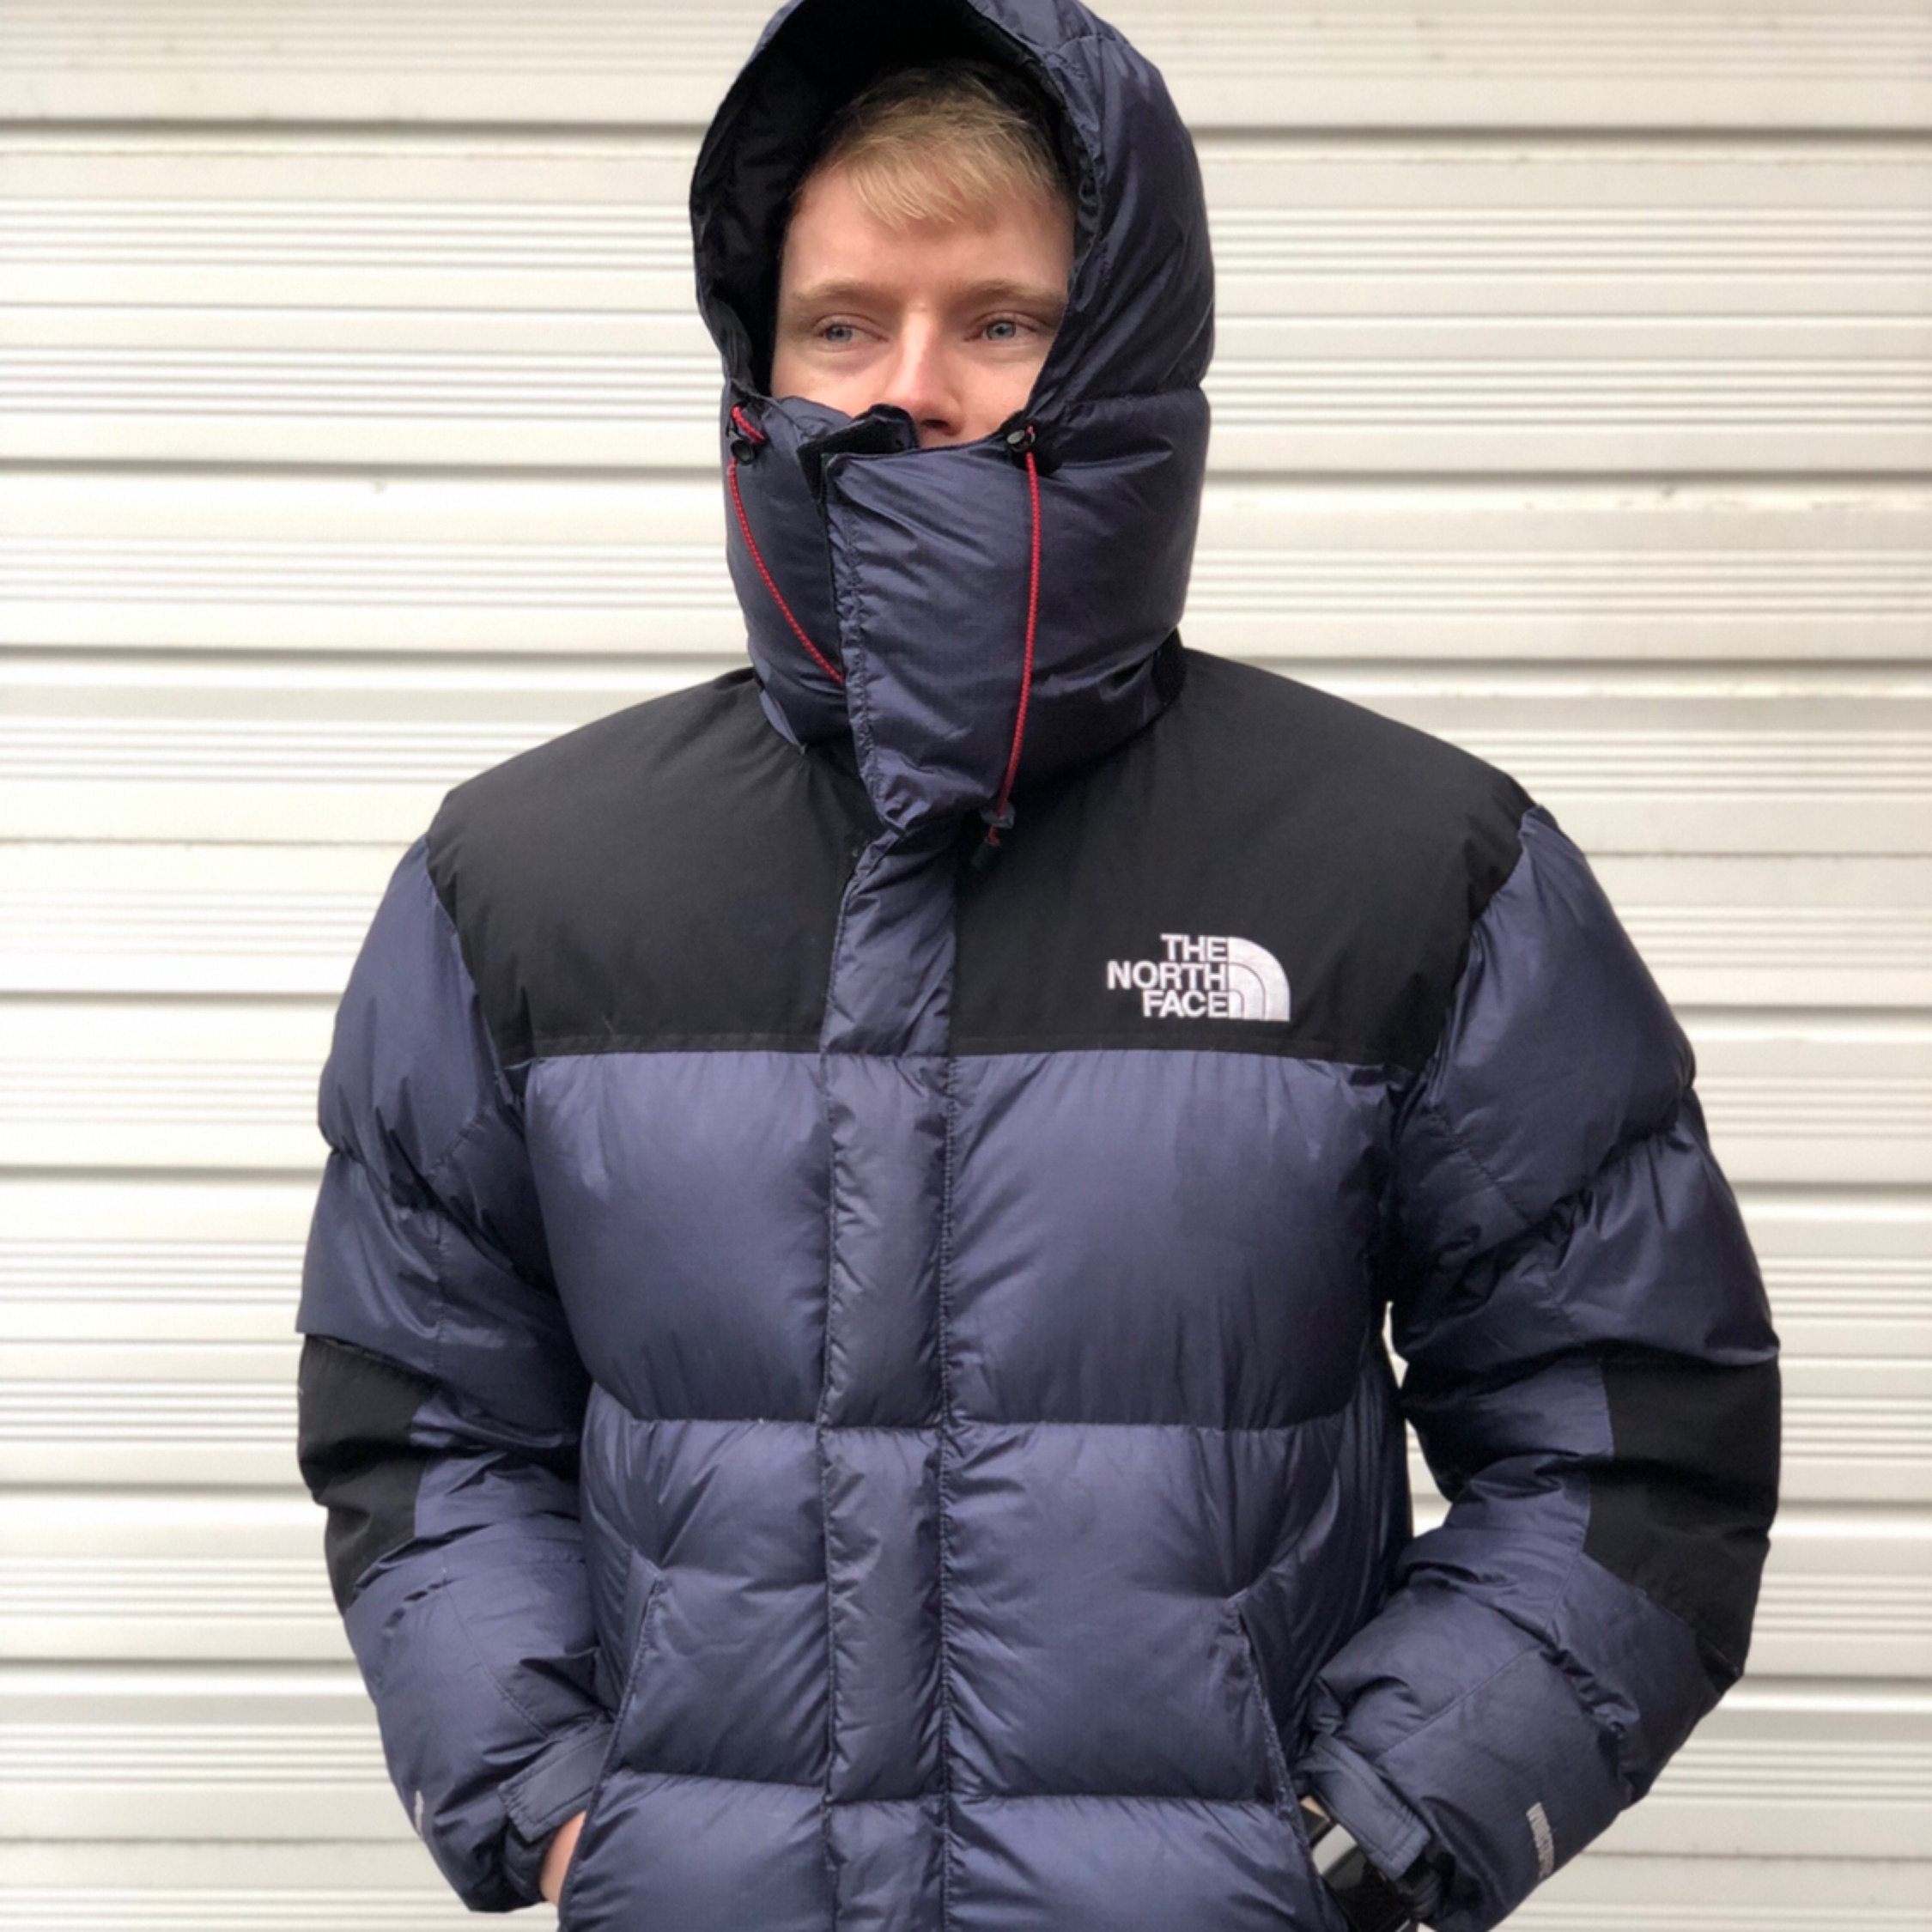 6d881d6f7 The North Face Puffer